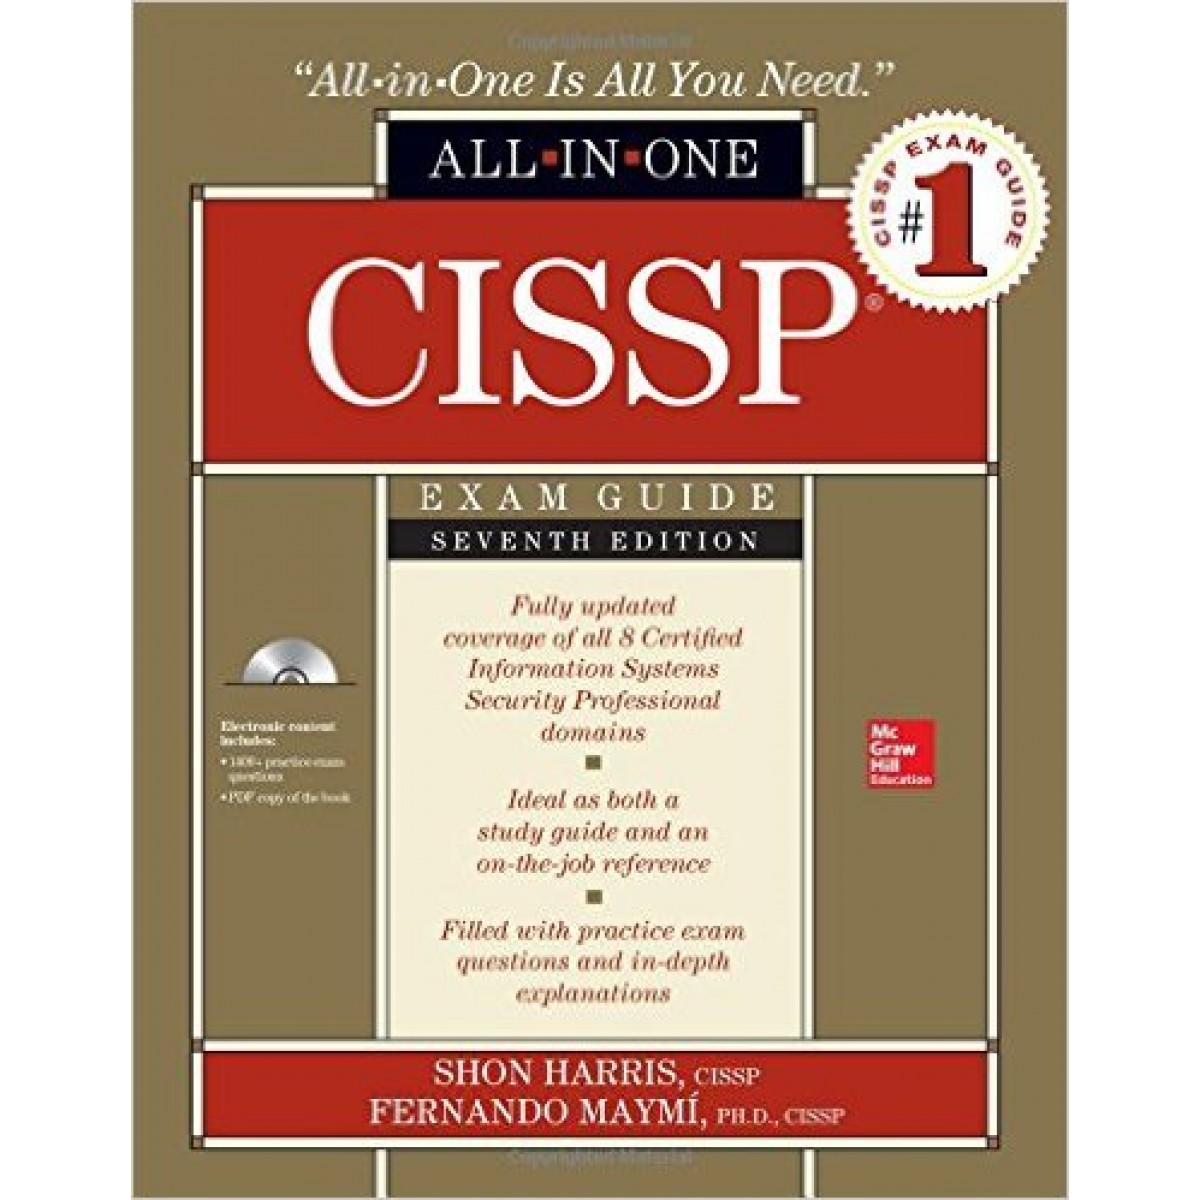 cissp all-in-one exam guide seventh edition 8th edition